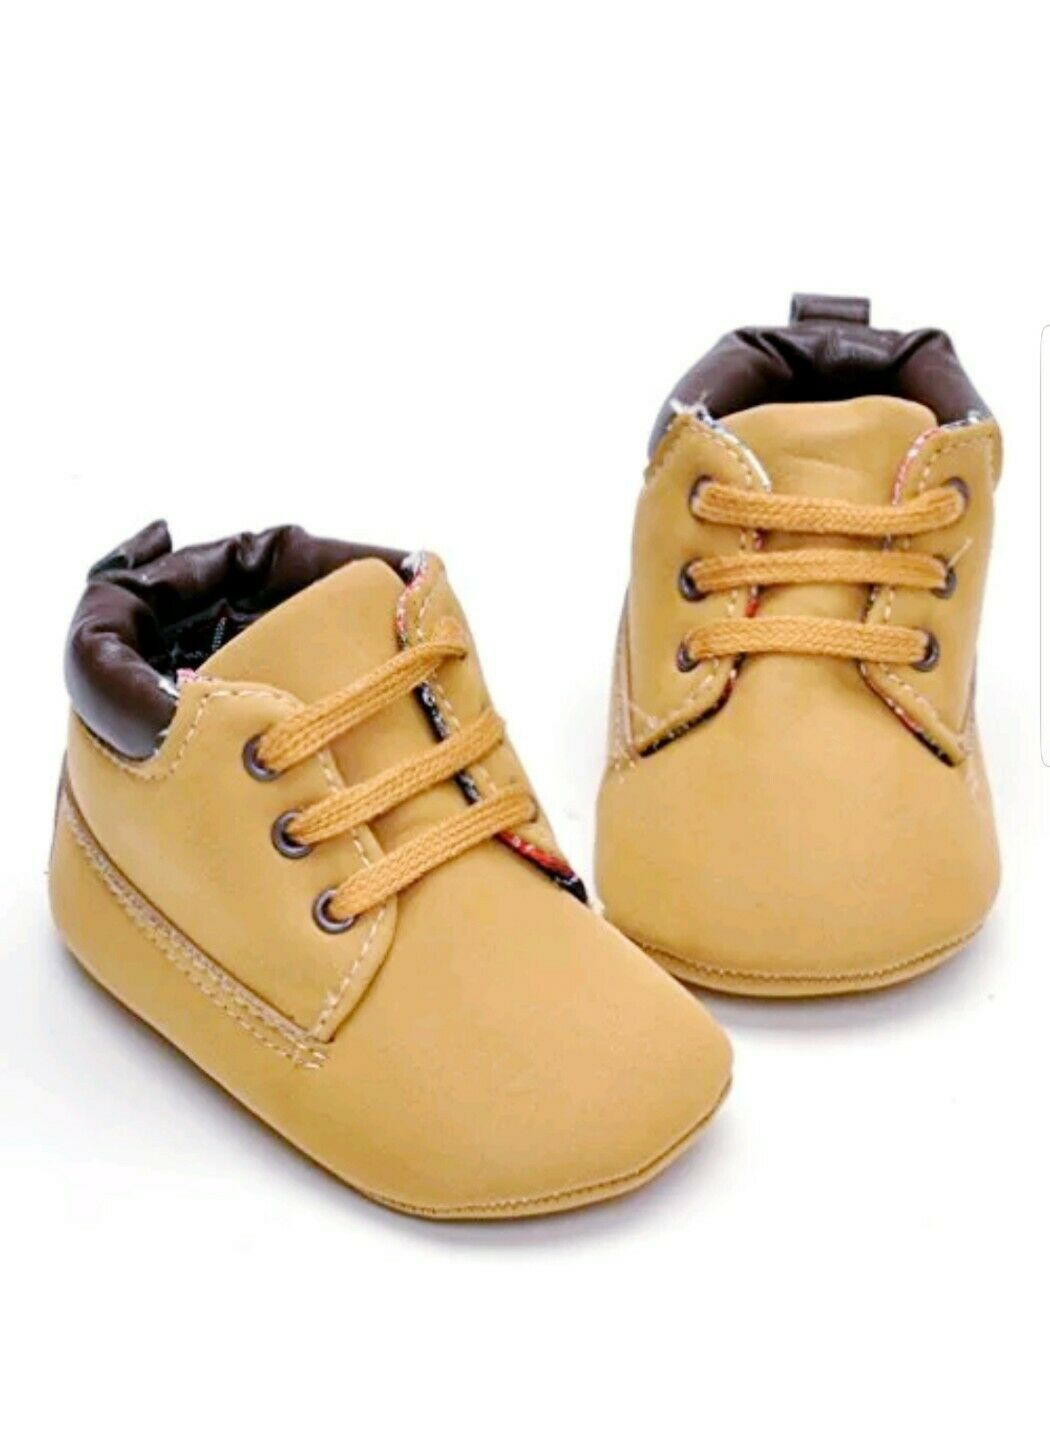 Annnowl Infant Sneakers Soft Sole Baby Boy Shoes Sizes 0 6 6 12 Months Baby Boy Shoes Ideas Of Baby B Baby Boy Shoes Kids Leather Shoes Crib Shoes Girl